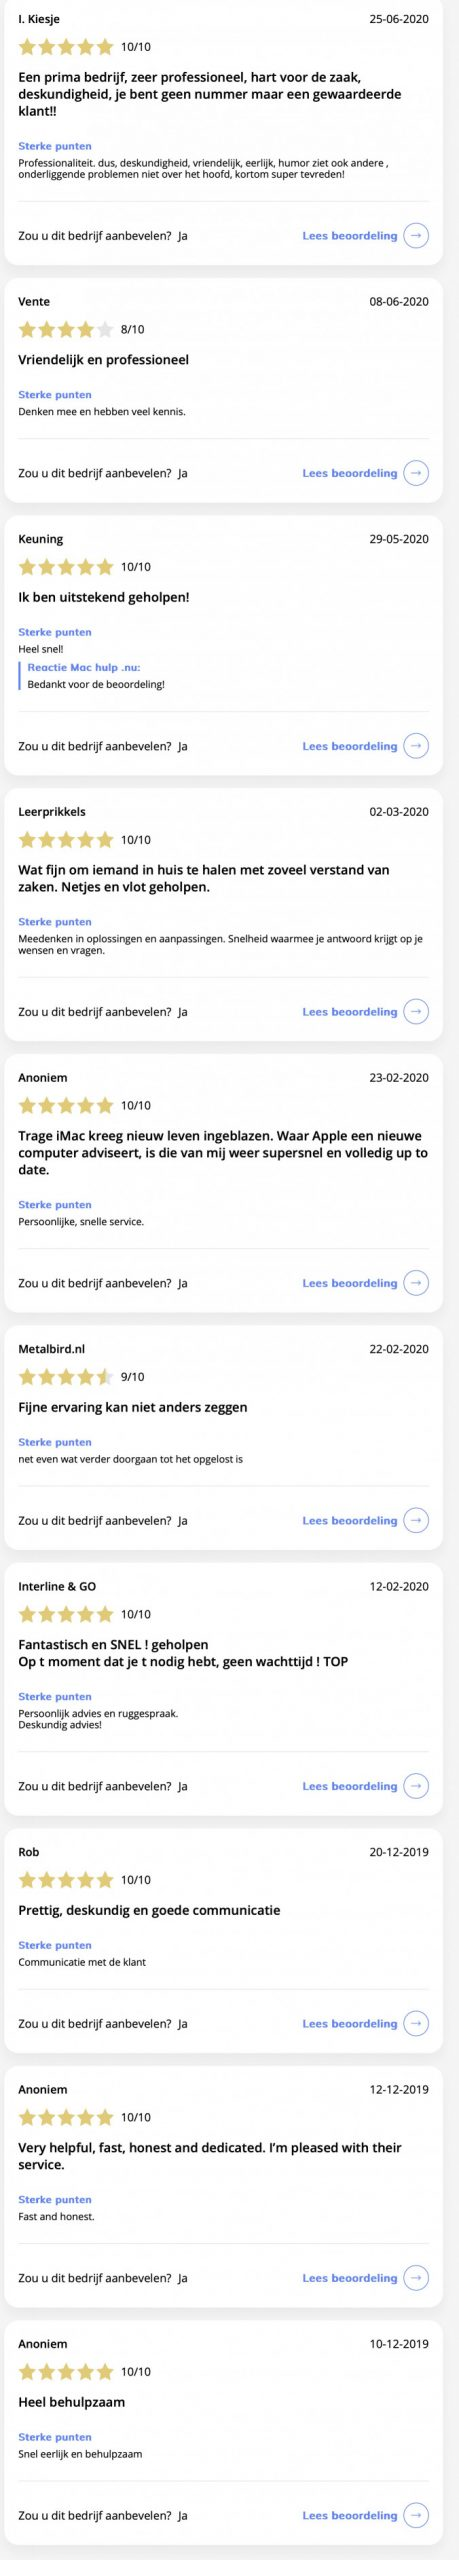 Mac hulp .nu Reviews en ervaringen Mac hulp .nu - feedbackcompany.com 2